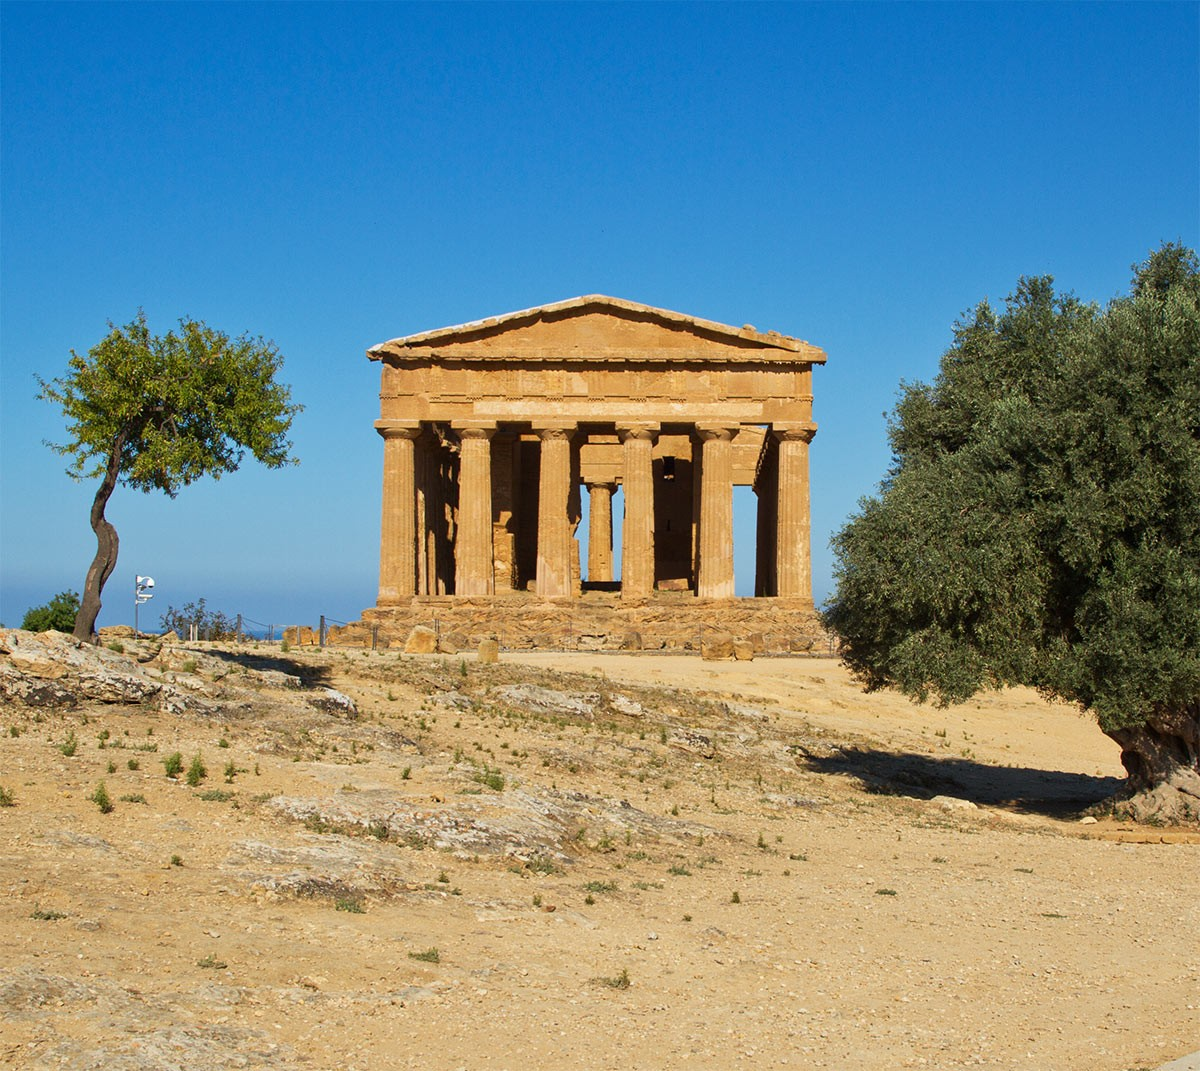 Weird Italy valley-of-the-temples-title-2 The Valley of the Temples in Sicily, Facts, History & Pictures Featured Italian History What to see in Italy  sicily romans pagan temple Magna Graecia greeks